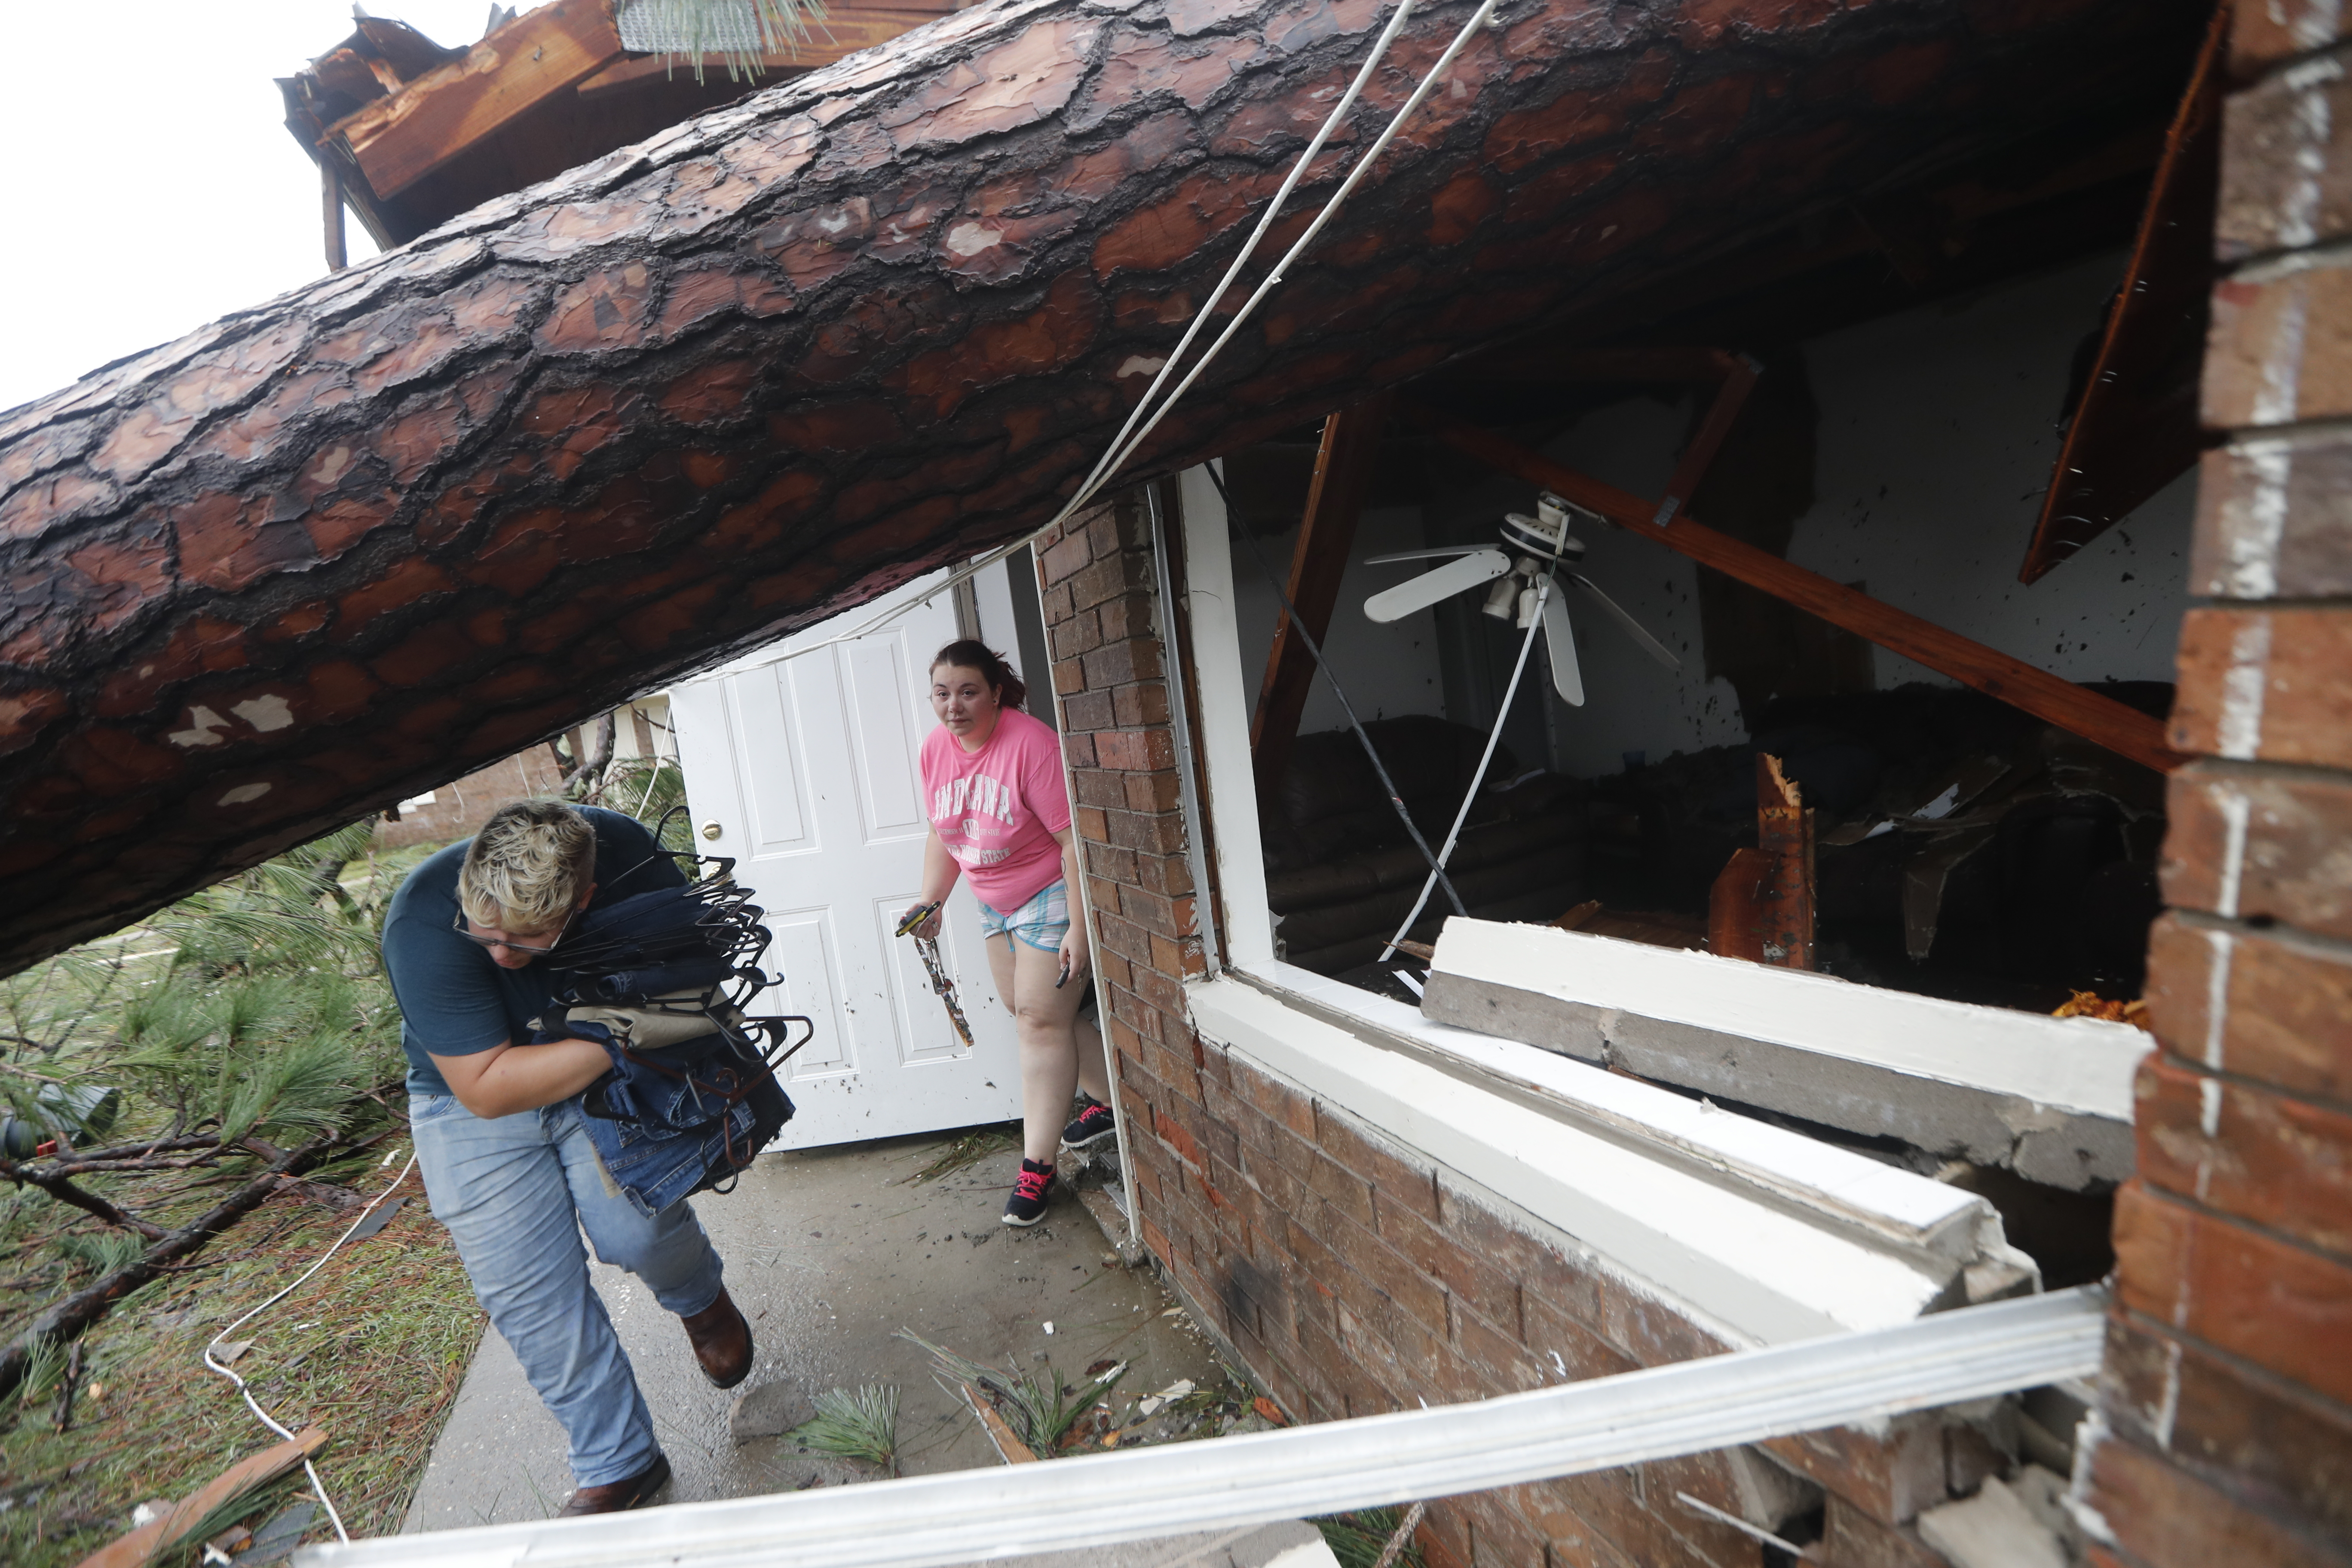 Megan Williams, left, and roommate Kaylee O'Brian take belongings from their destroyed home after several trees fell on the house during Hurricane Michael in Panama City, Fla., Wednesday, Oct. 10, 2018. (AP Photo/Gerald Herbert)